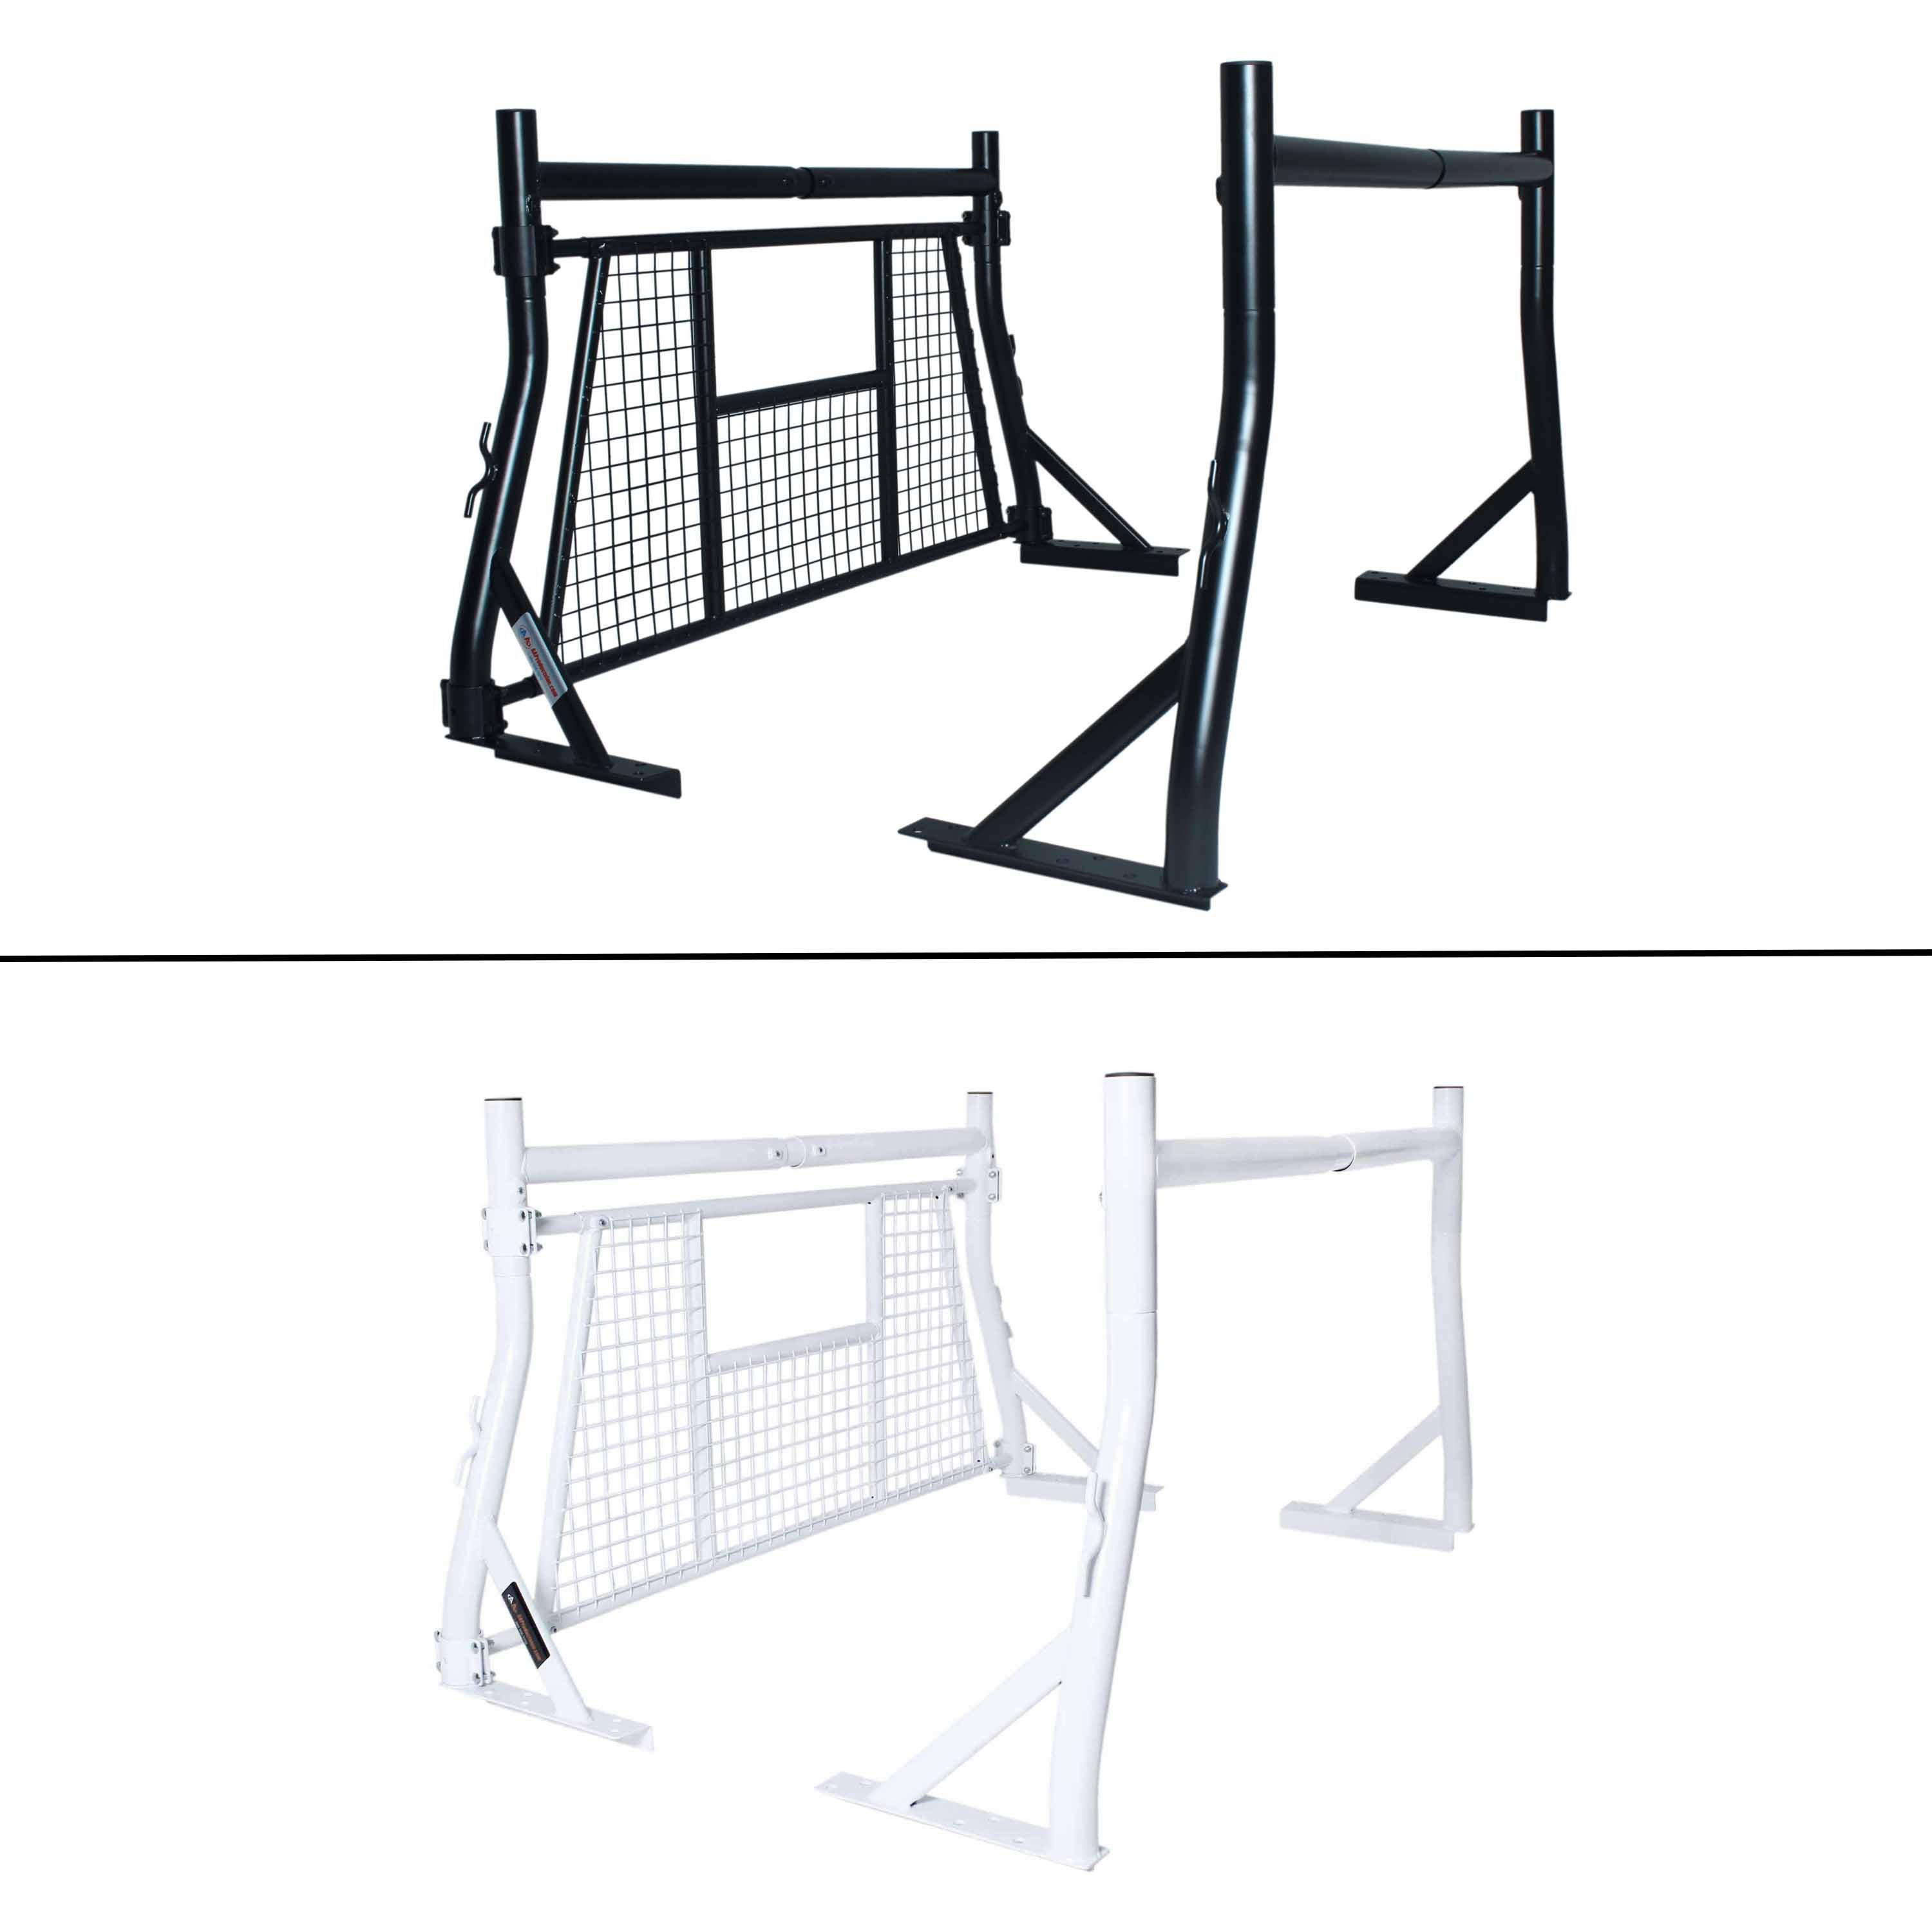 AA-Racks 800 LB Capacity Extendable Pick-up Truck Rack with Protective Screen Set - Black (X35-W-BLK)